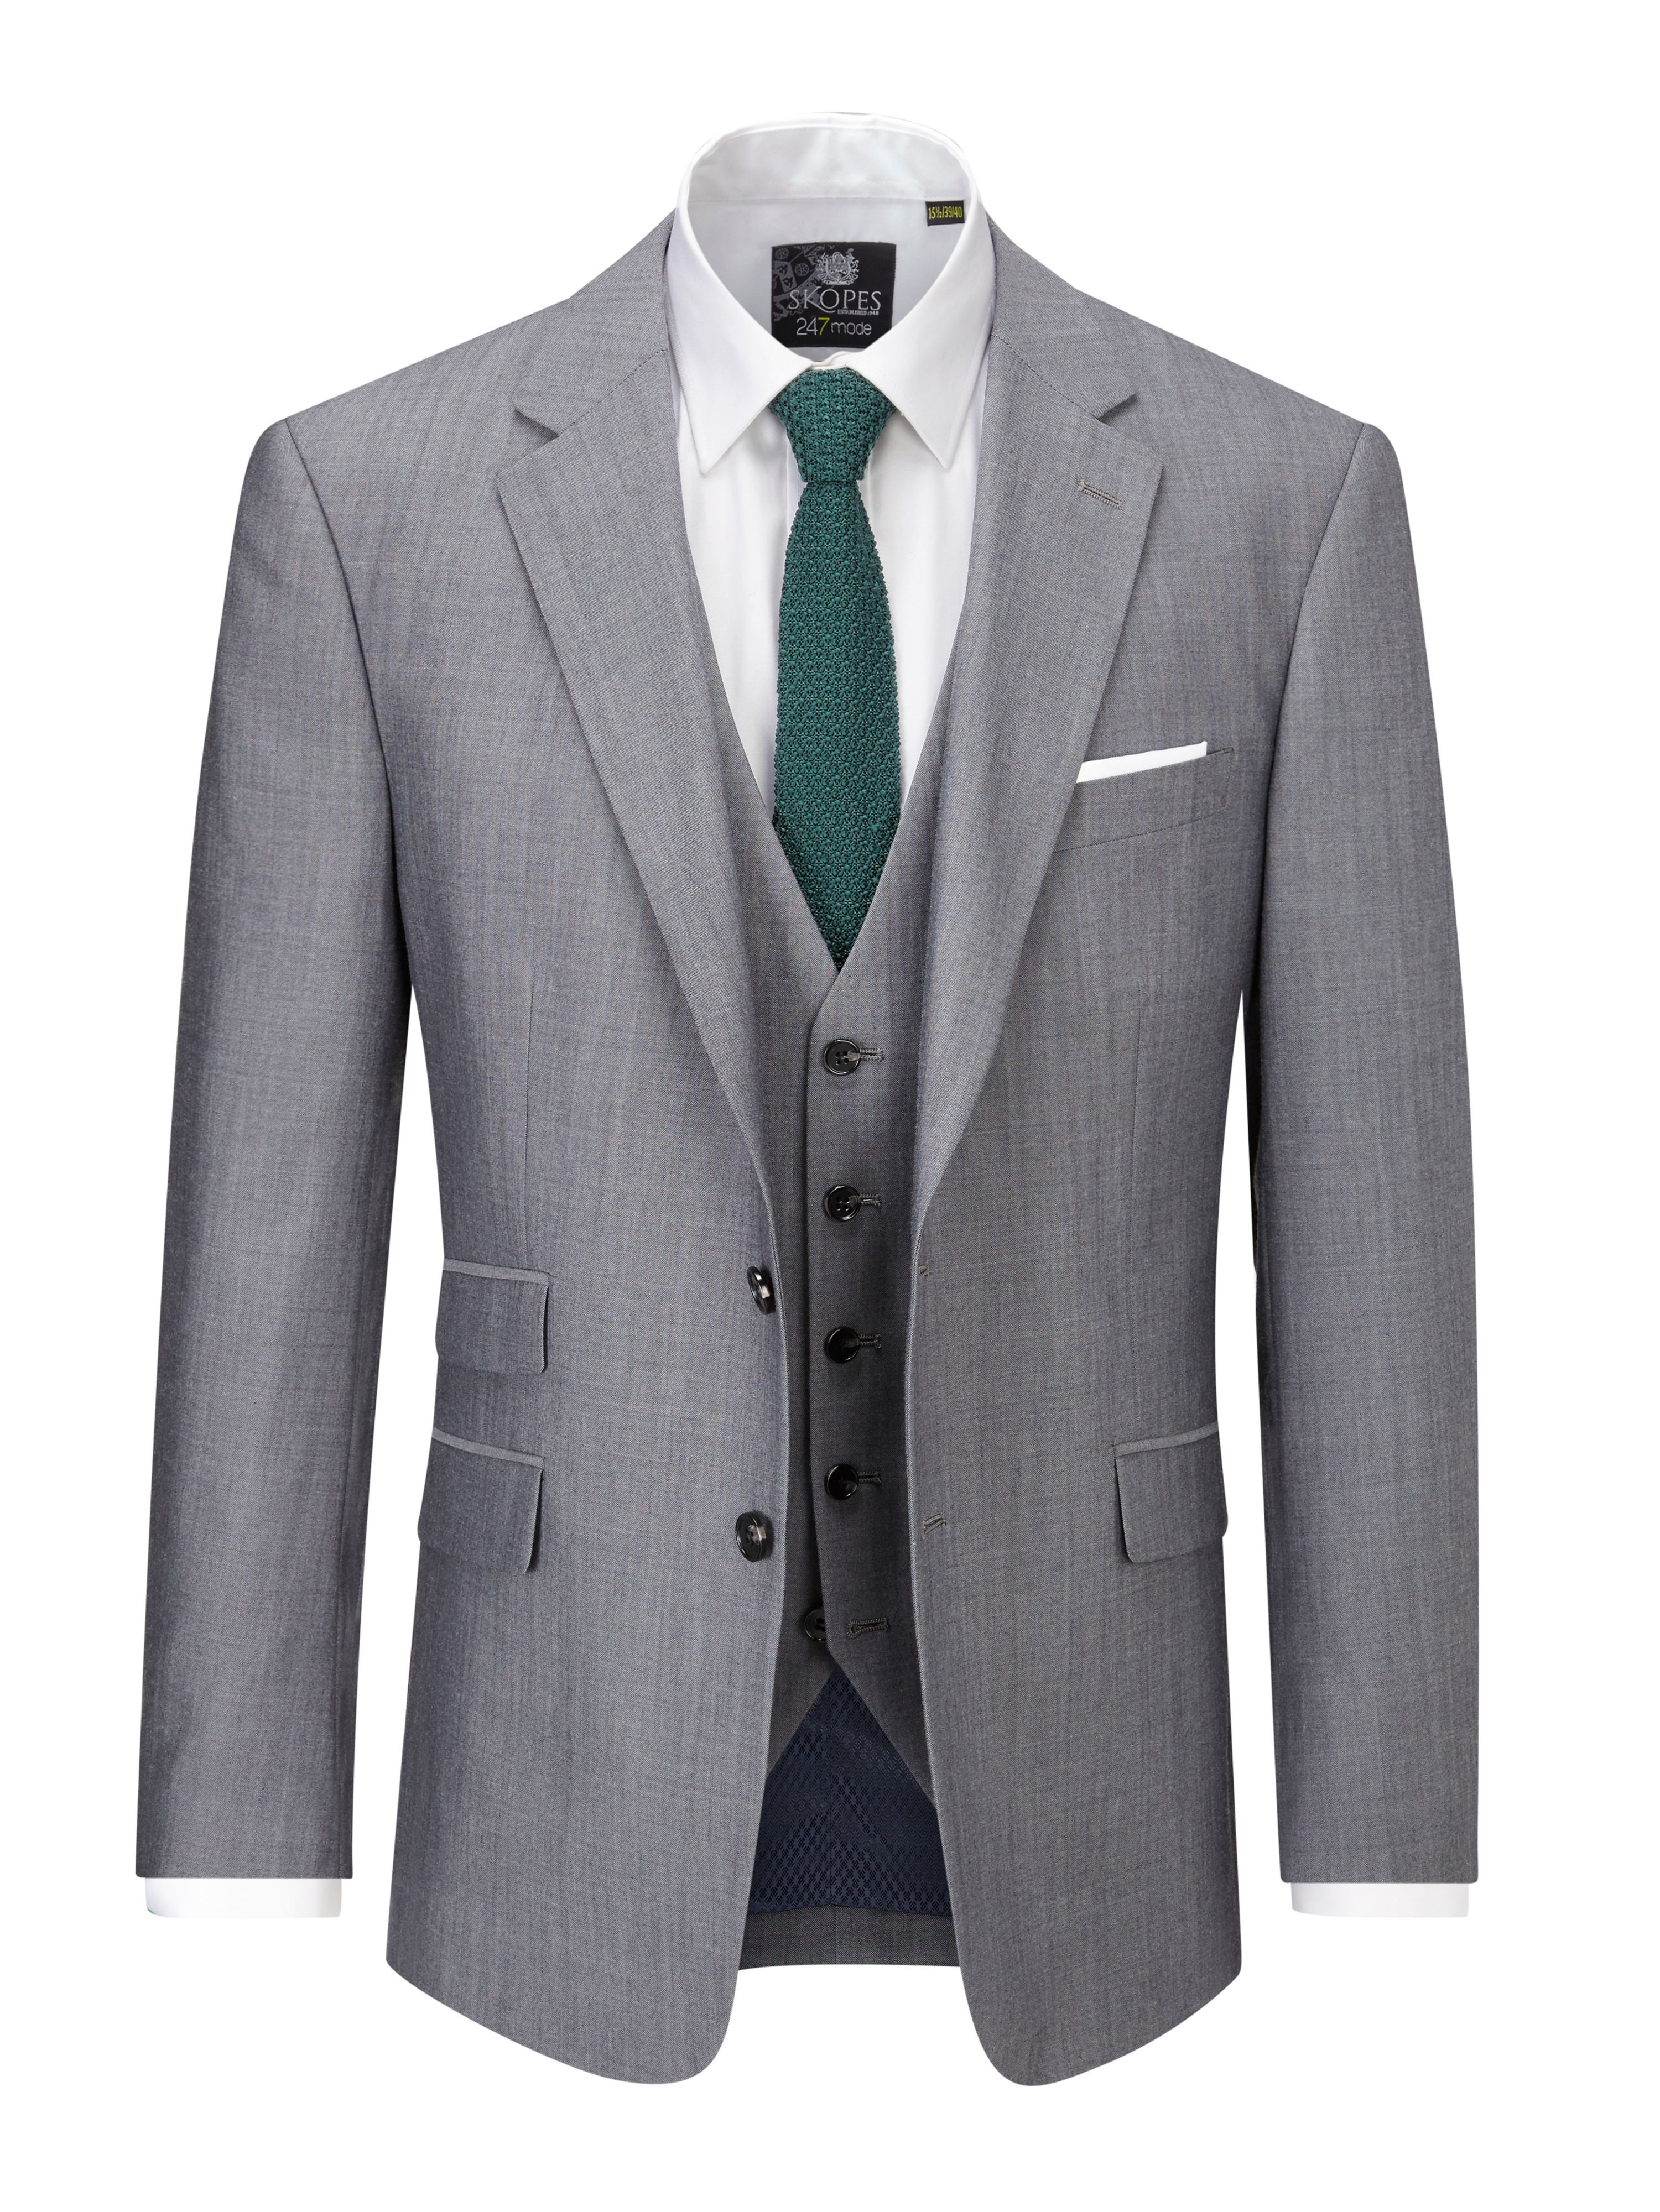 Colour therapy for marriage - Skopes Reagan Suit Jacket